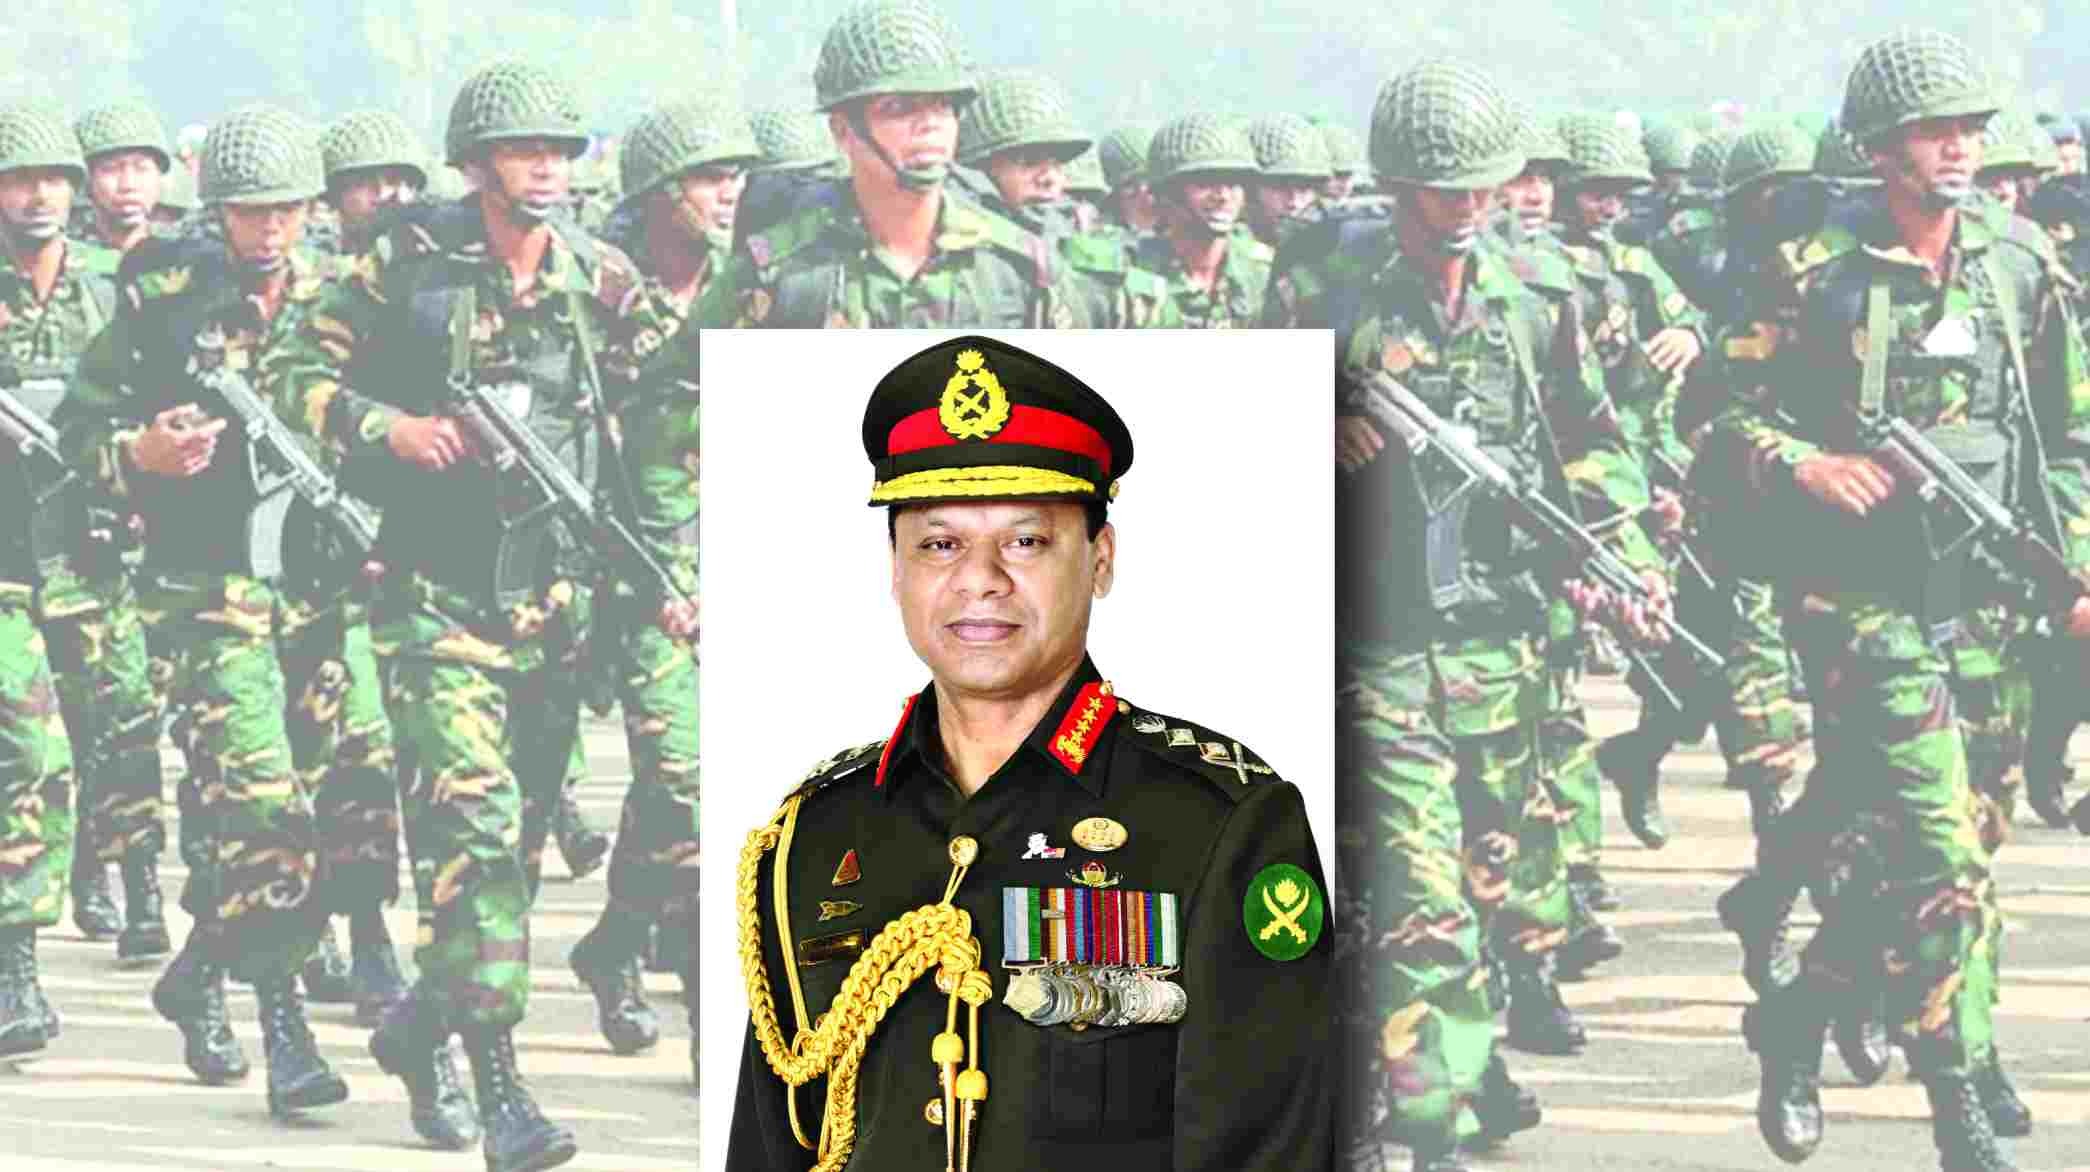 Bangladesh Army: Marching into the future'